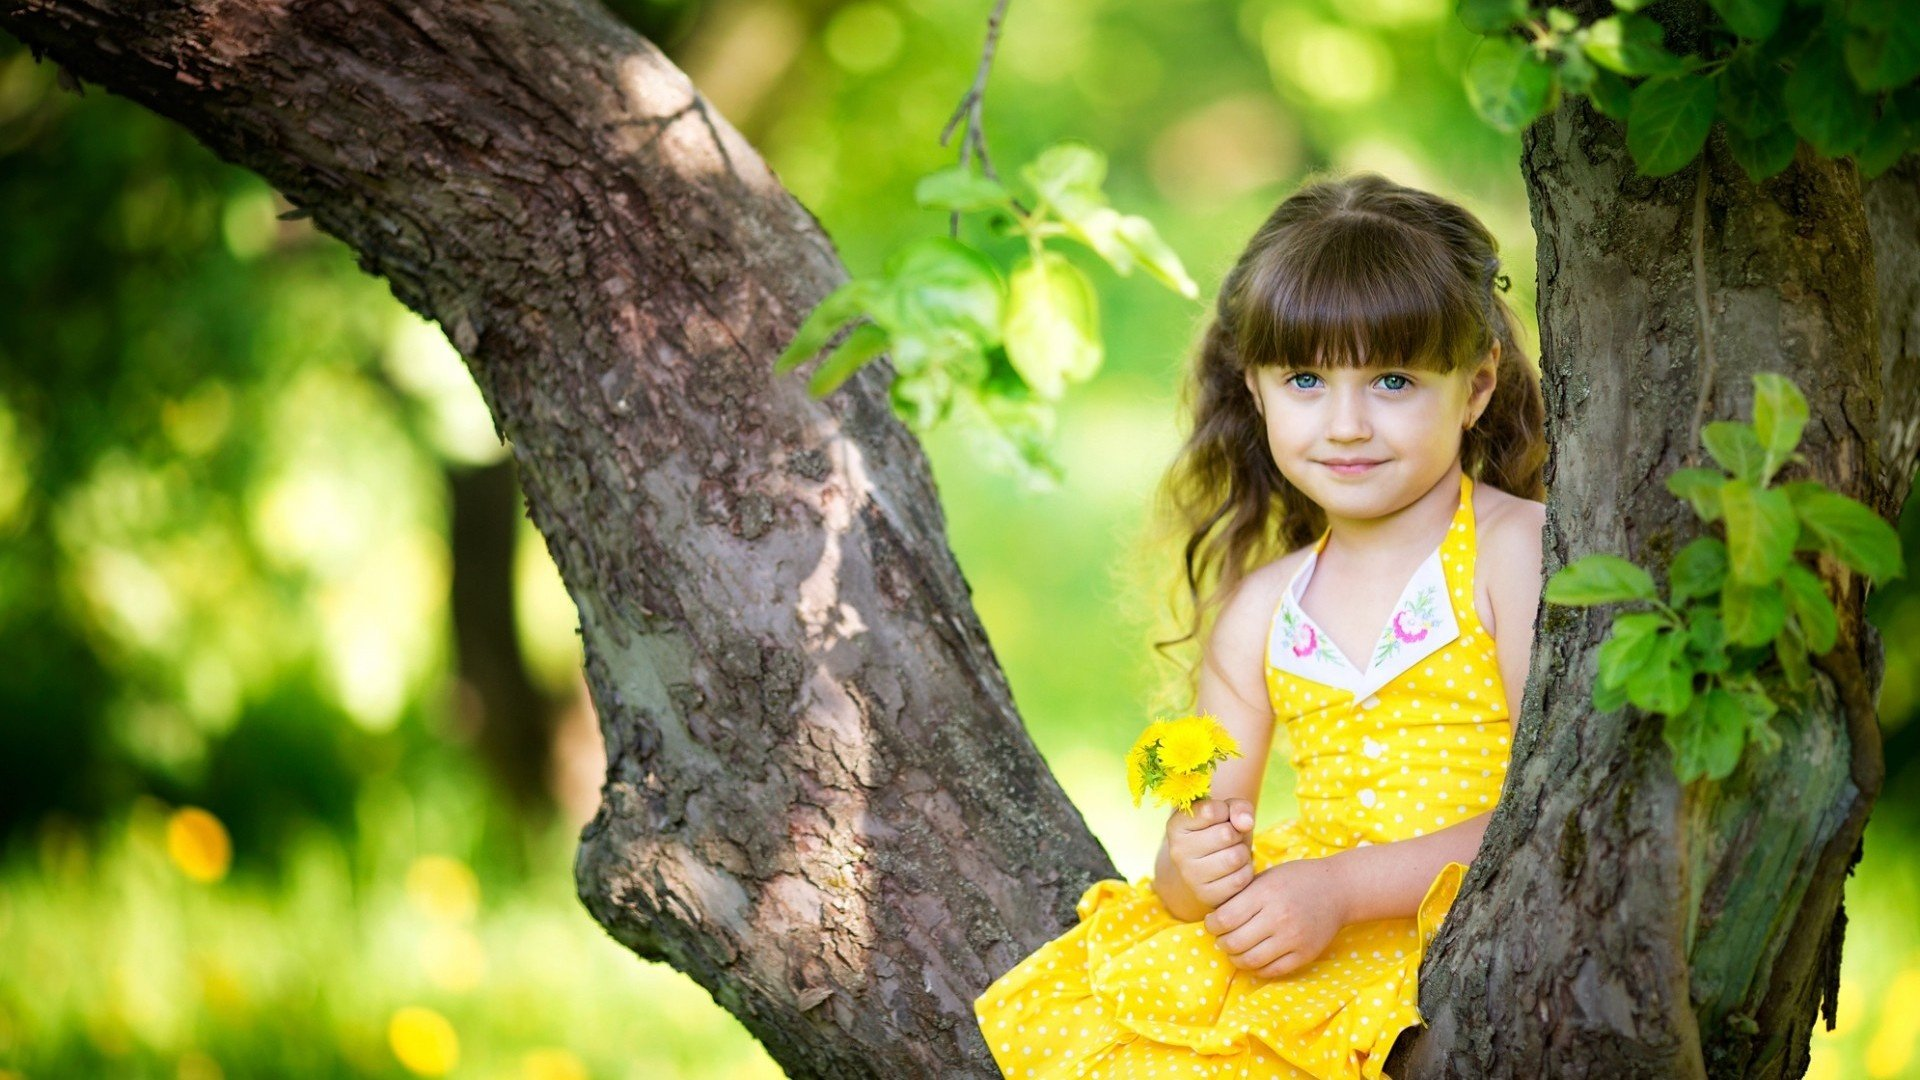 1920x1080px cute baby girl pictures wallpapers - wallpapersafari